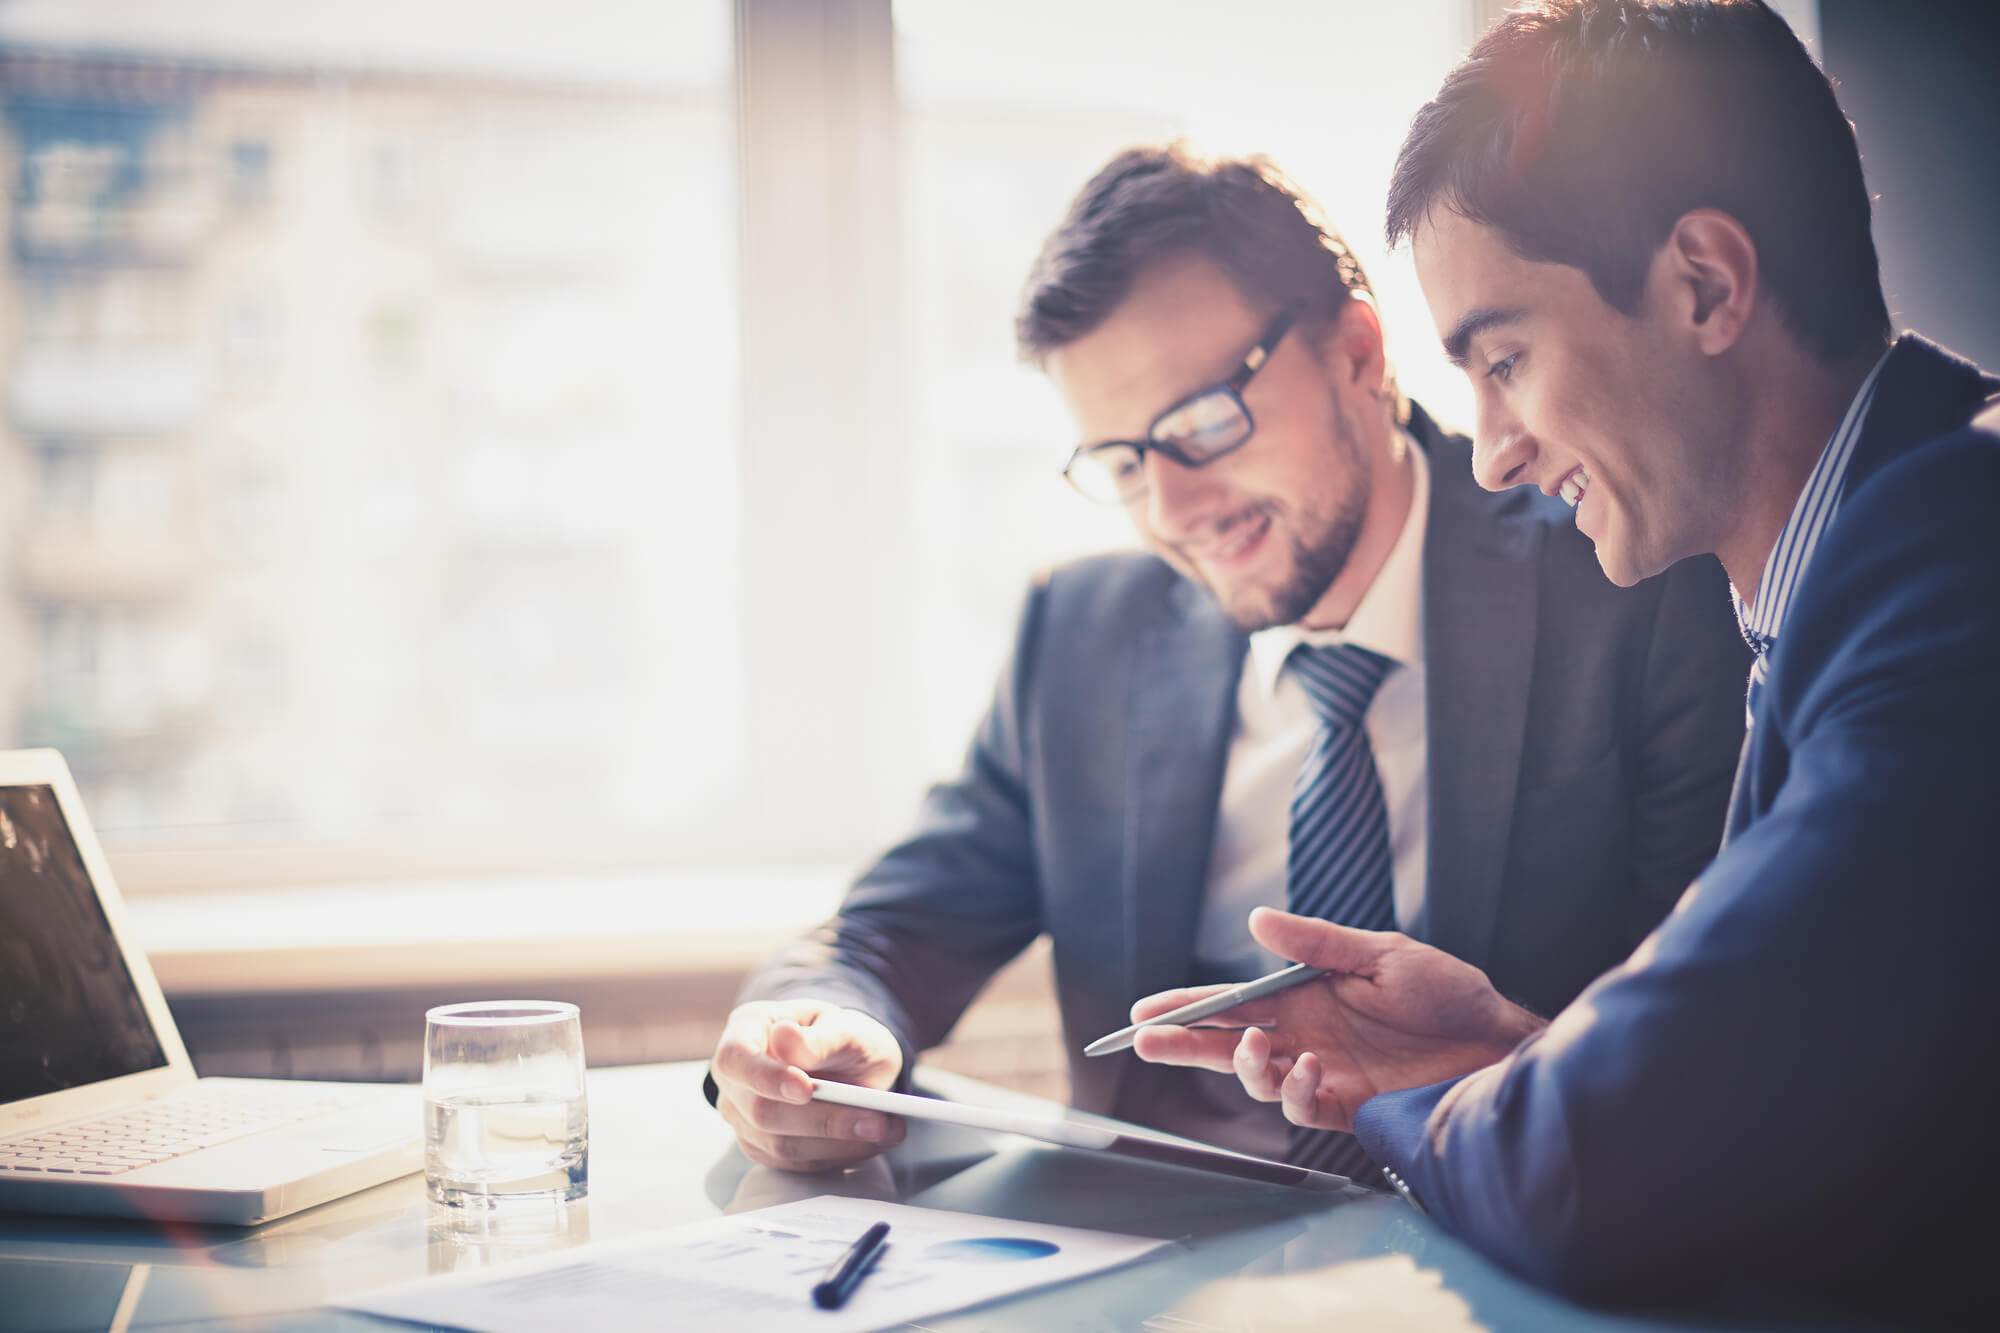 where can i get insurance business consulting?